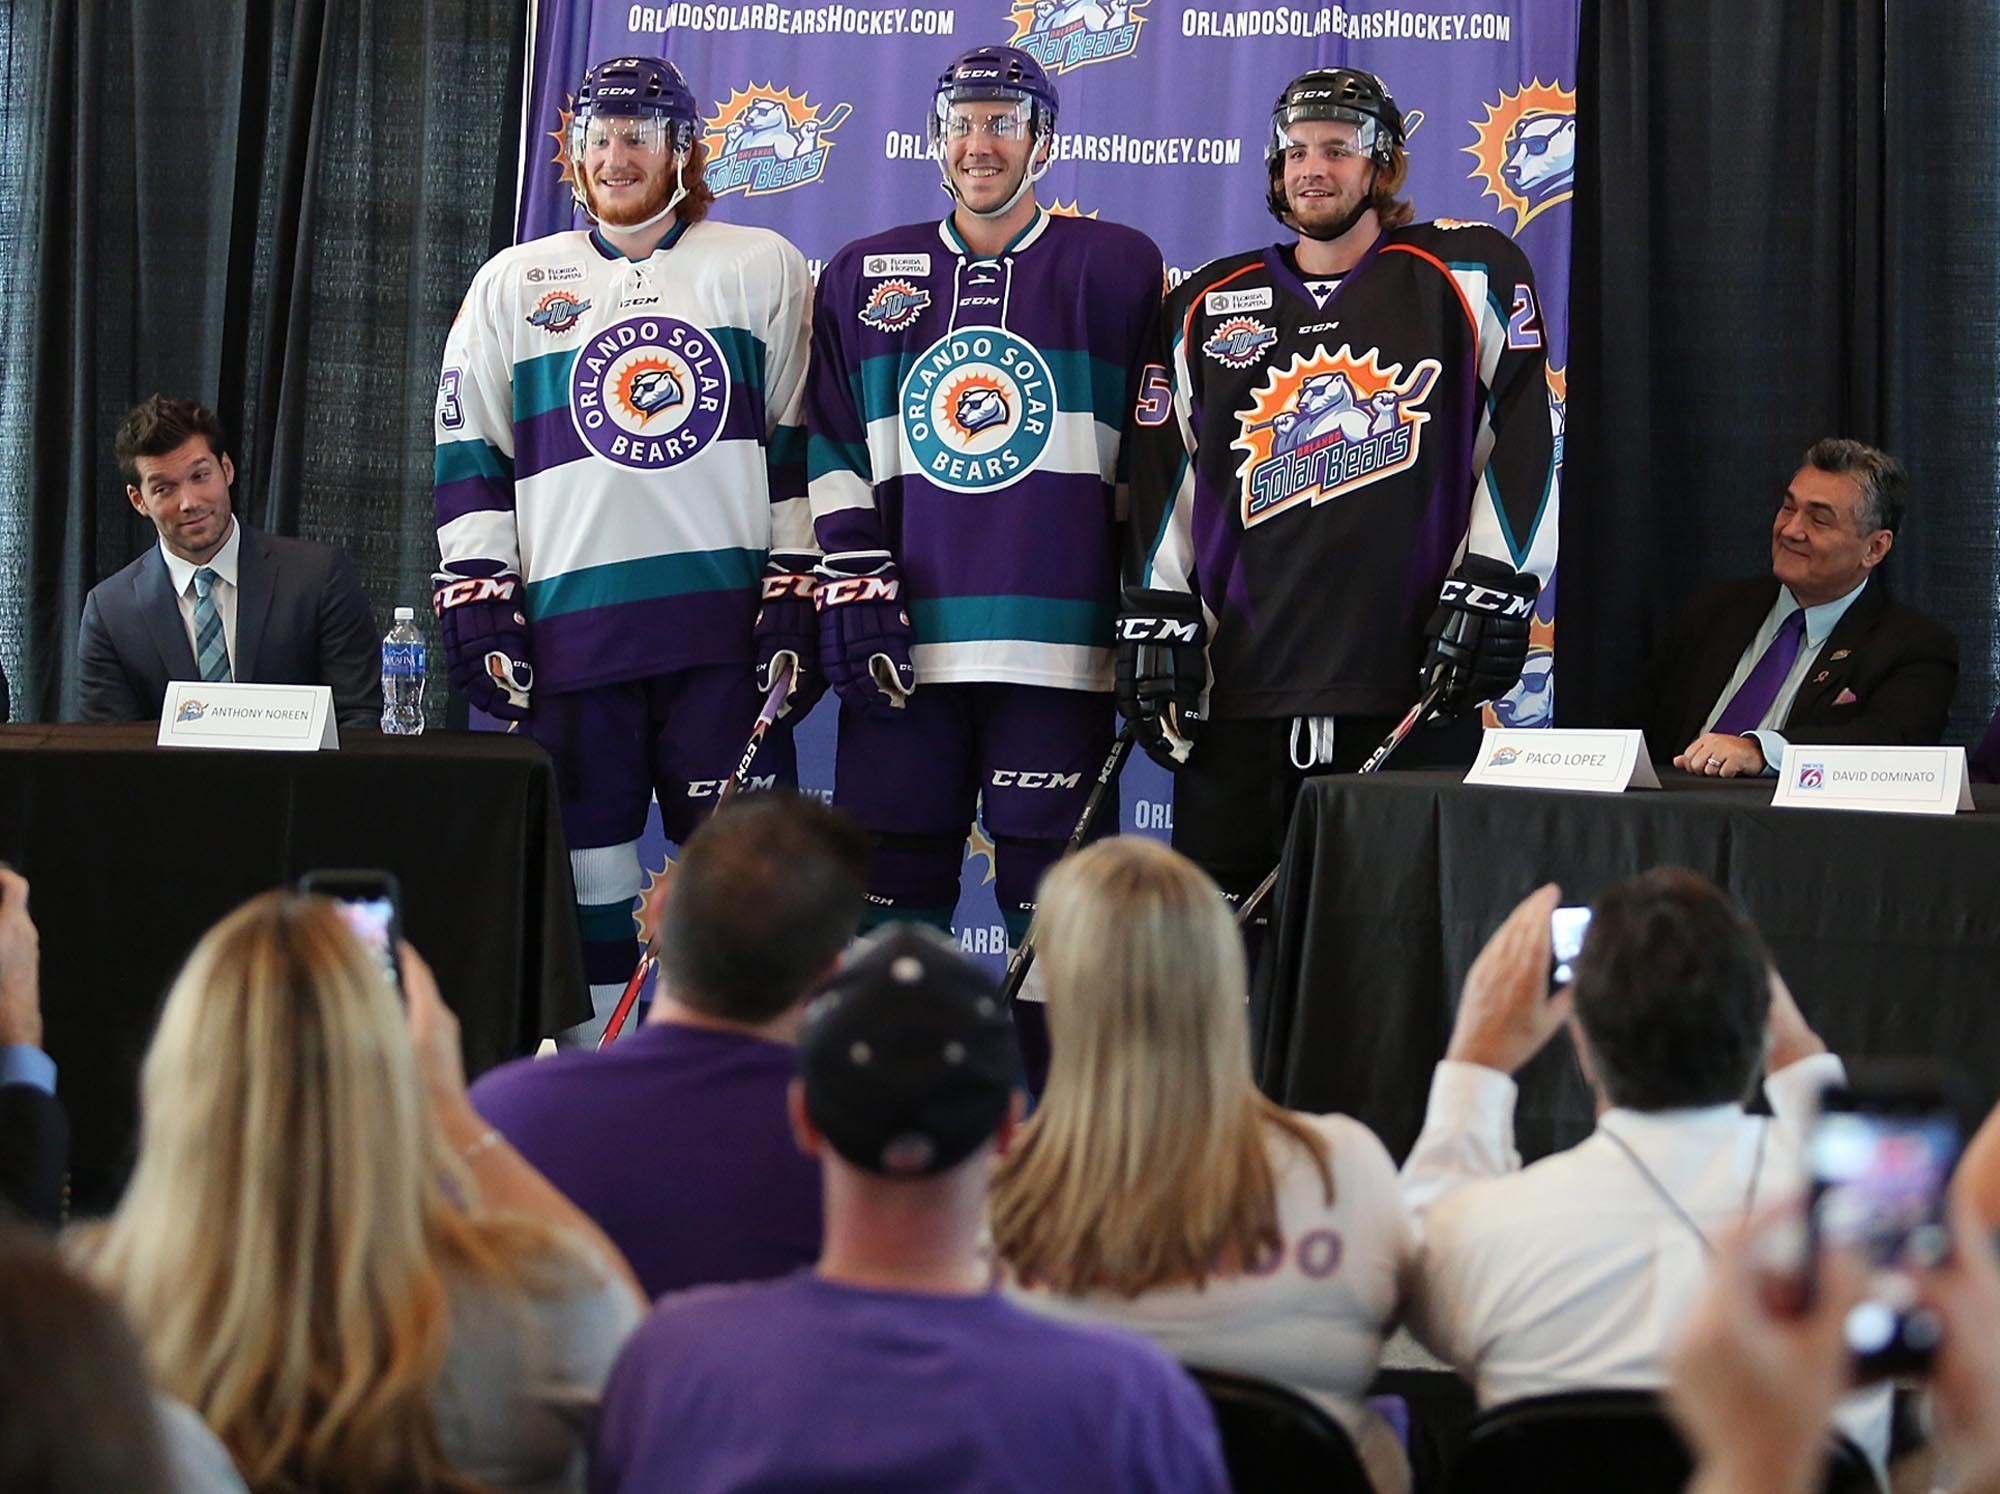 c8ec00a99 Solar Bears announce UCF hockey game for Amway Center - Orlando Sentinel